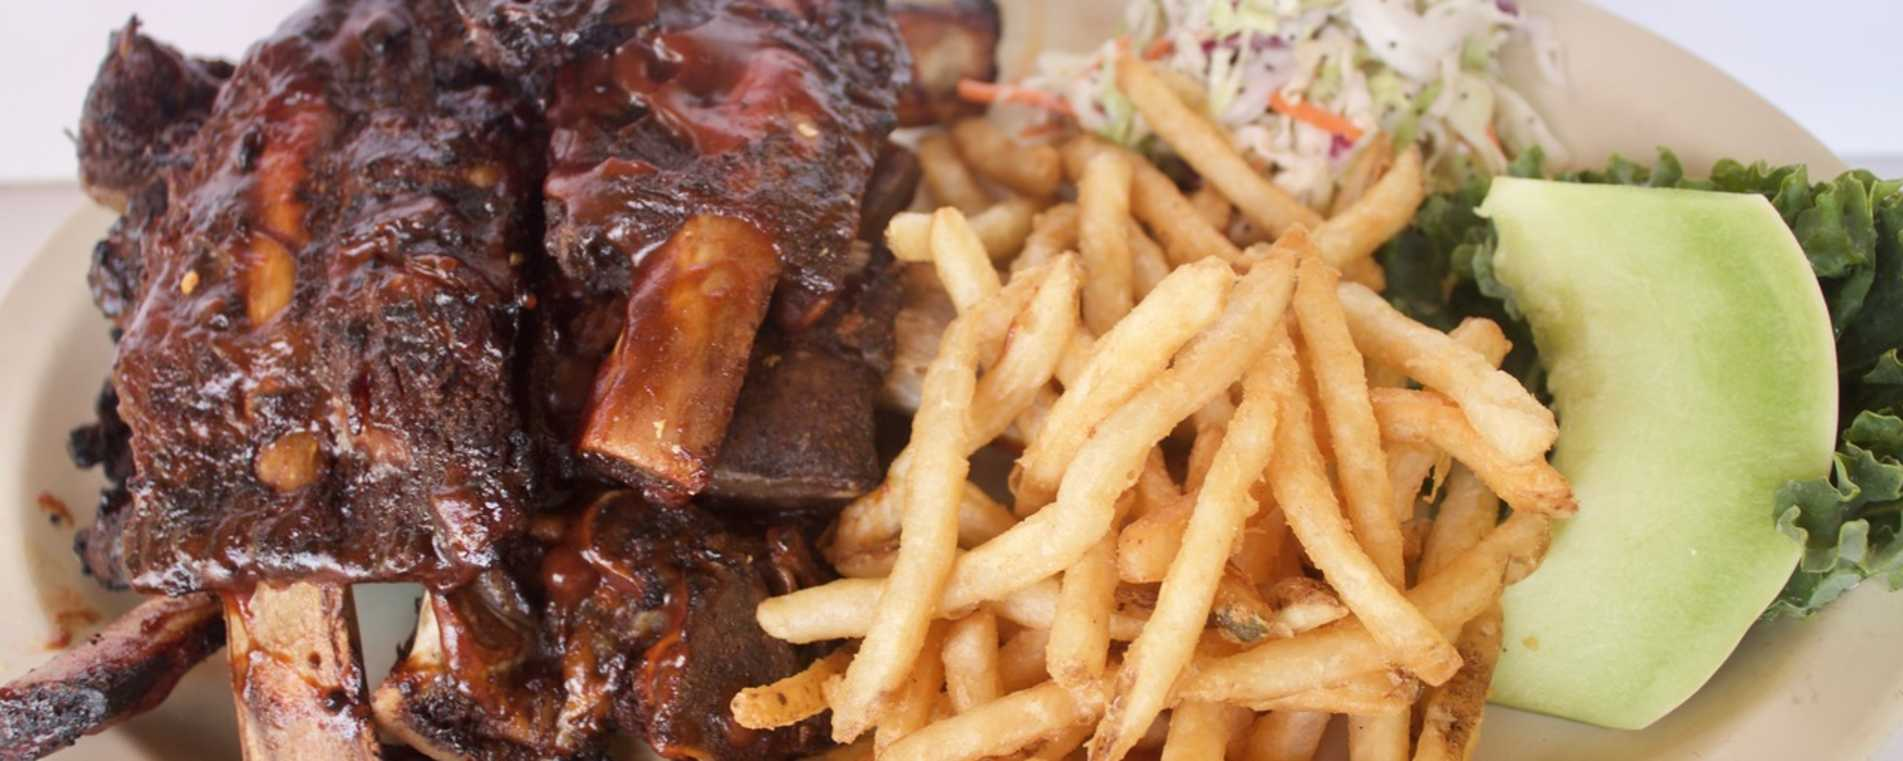 Texas Lil's Mesquite Grill Plate - Temecula